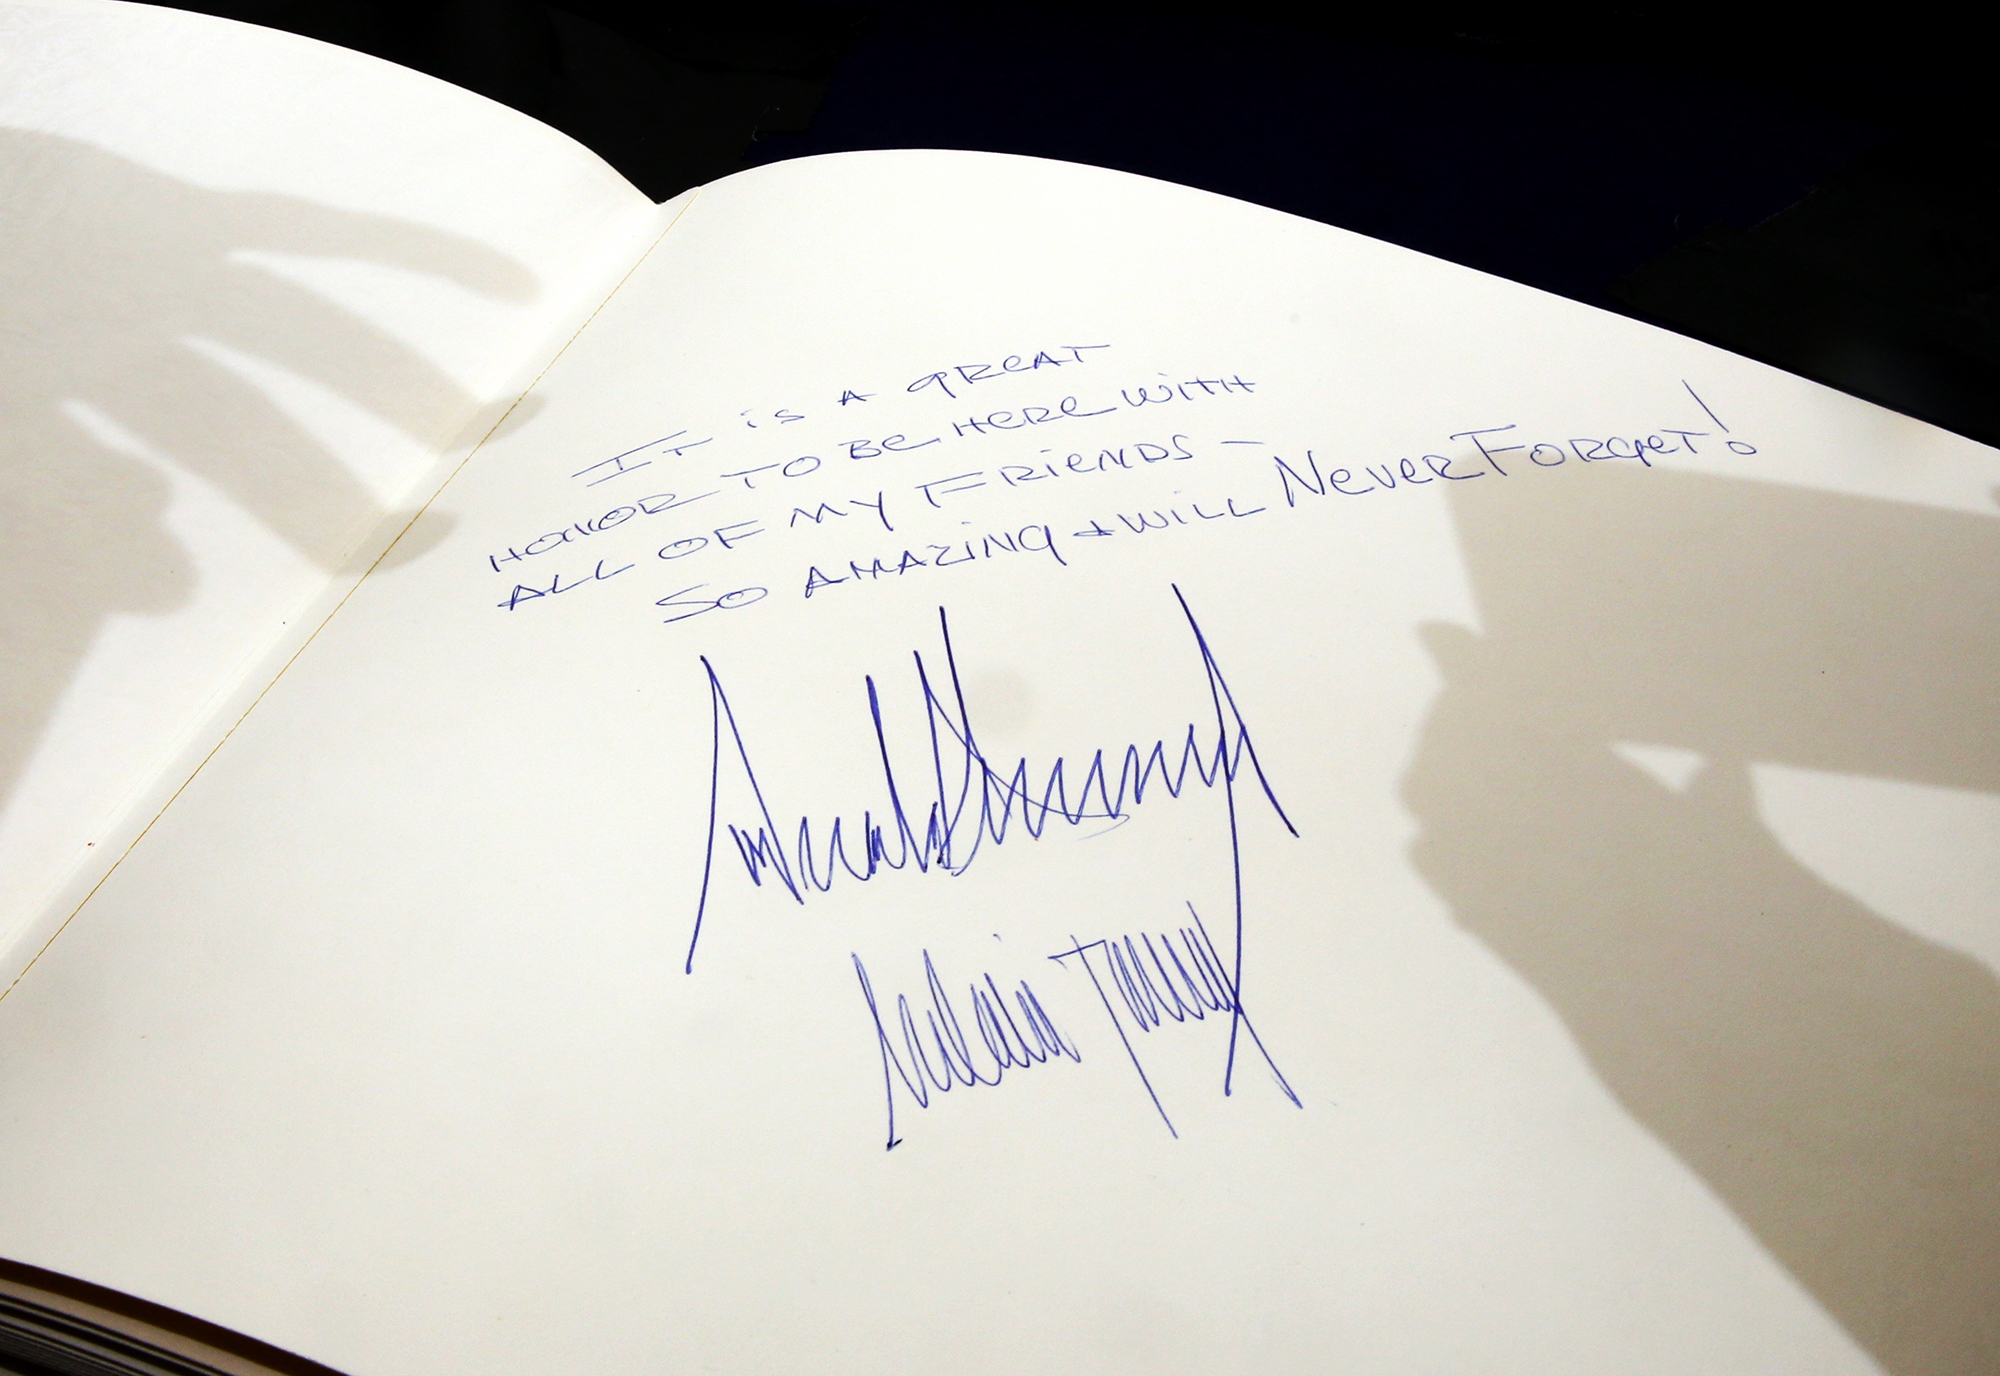 The message written by Donald Trump at the Yad Vashem Holocaust Memorial Museum guest book, signed by him and his wife Melania during a visit in Jerusalem, Israel, on May 23, 2017.